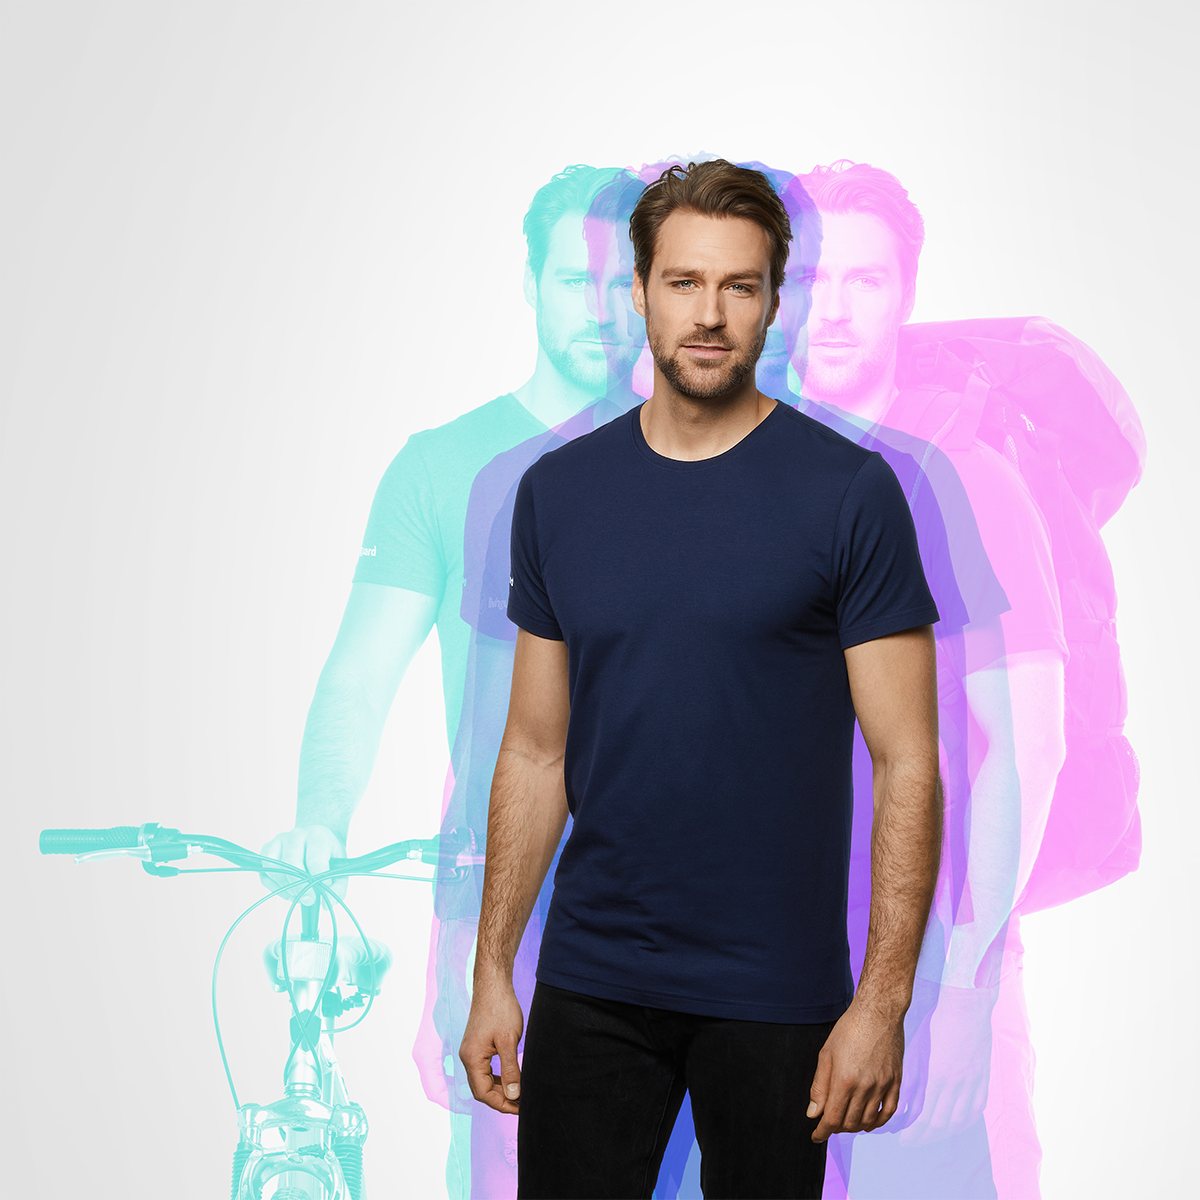 Image of a man wearing a dark blue t-shirt from Livinguard. Shadows of the same person in the background, representing daily activities as cycling and backpacking